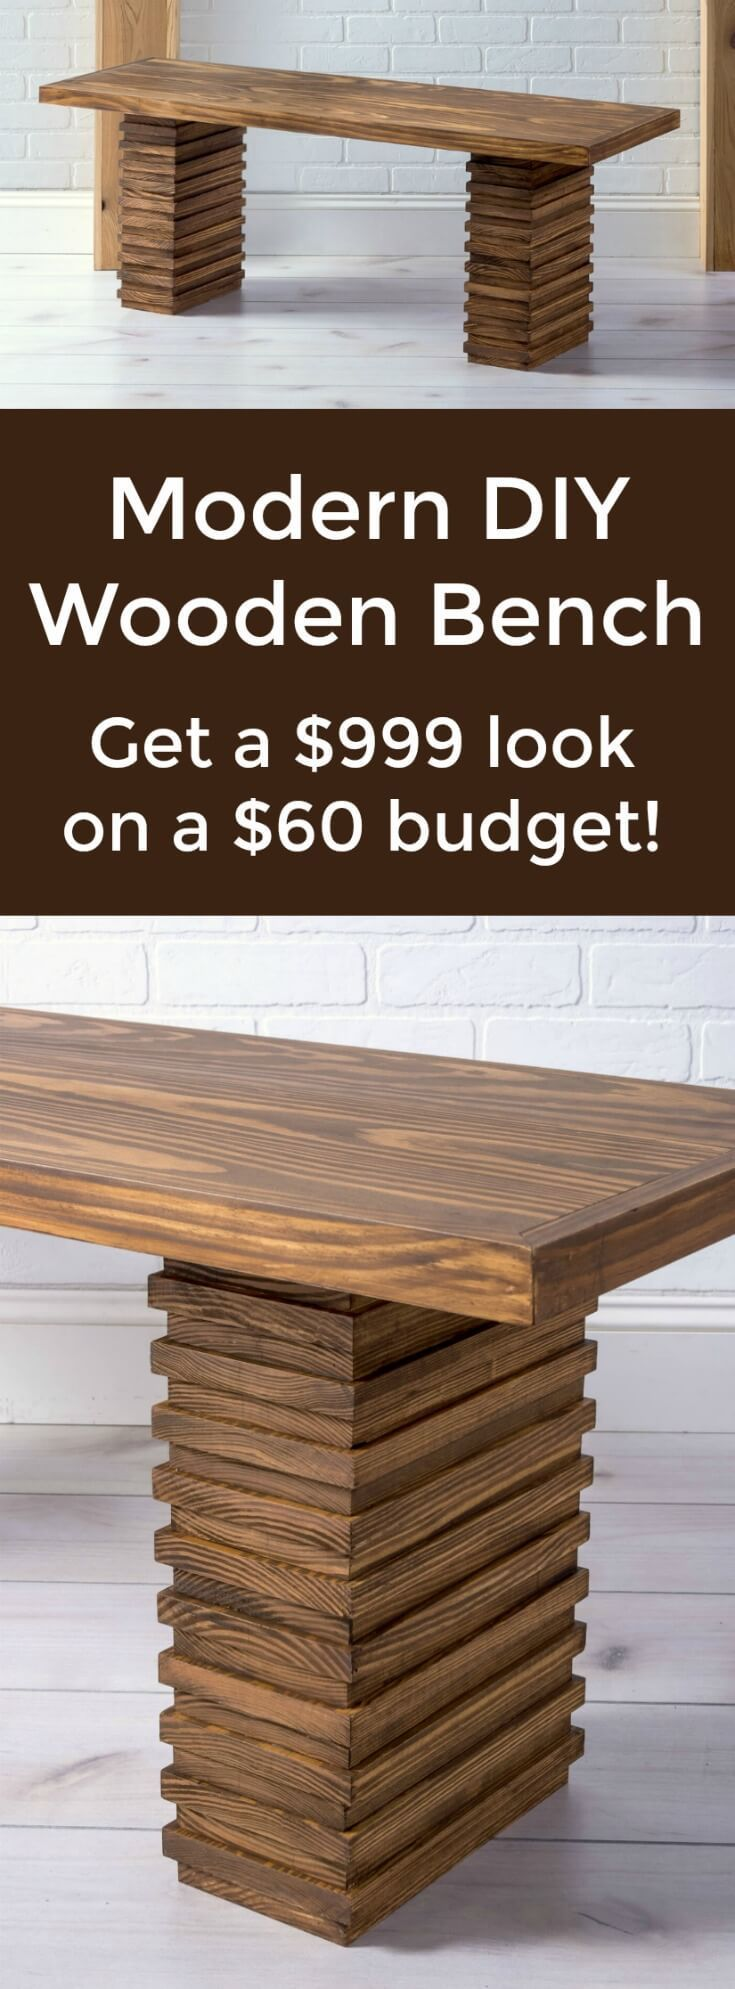 This modern wooden bench was inspired by a Crate and Barrel find for $999 - except we made our version for less than $60. Easy to follow tutorial! via @diy_candy